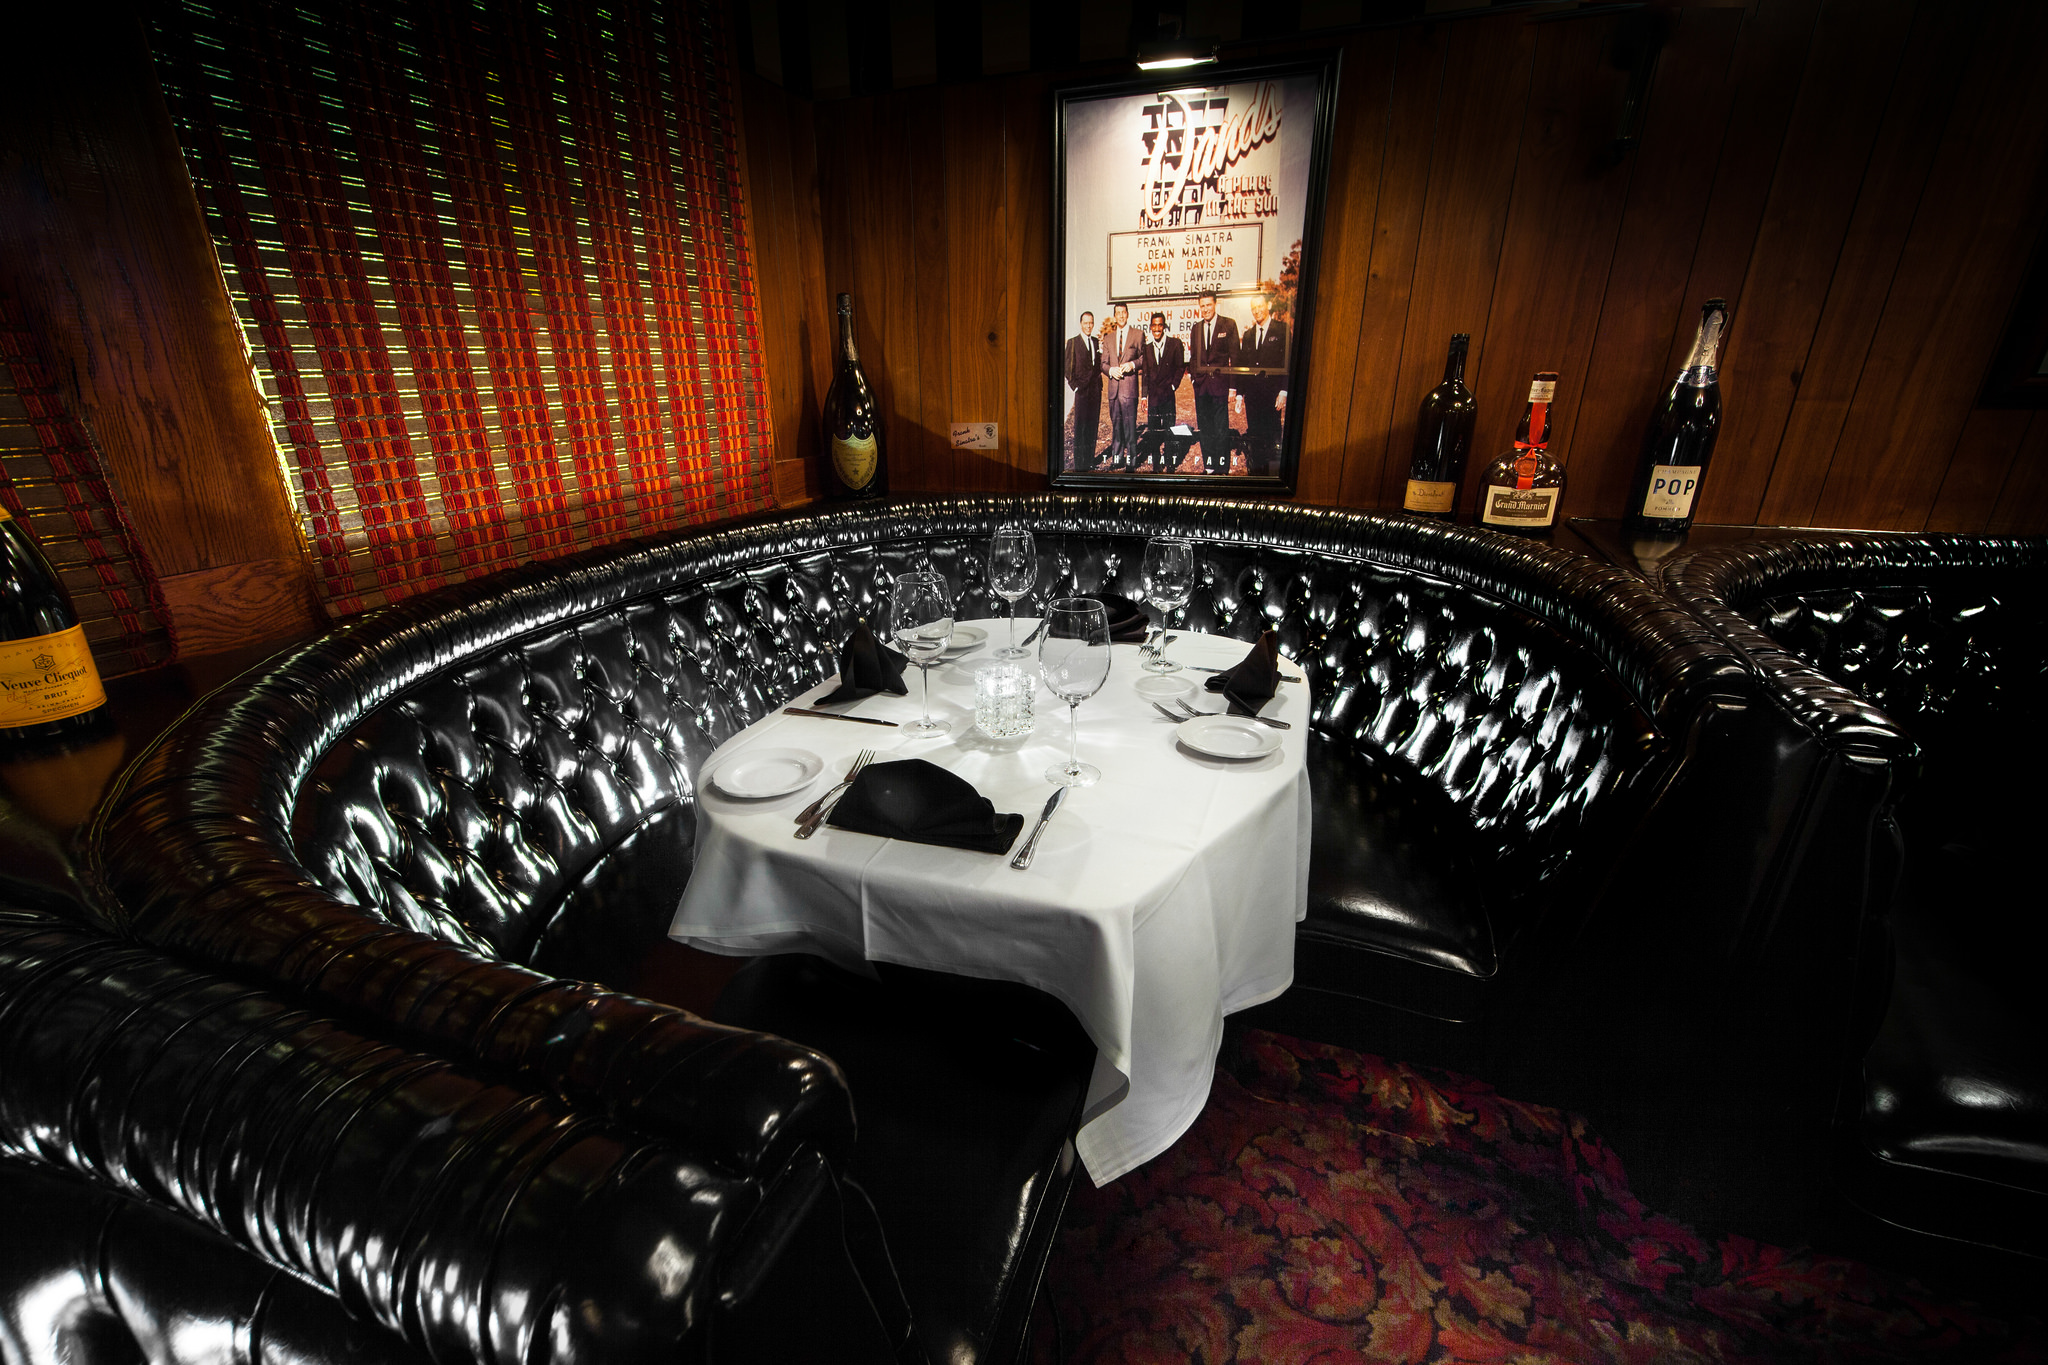 Frank Sinatra's booth, Number 22, at The Golden Steer. Phot courtesy of Chris Wessling